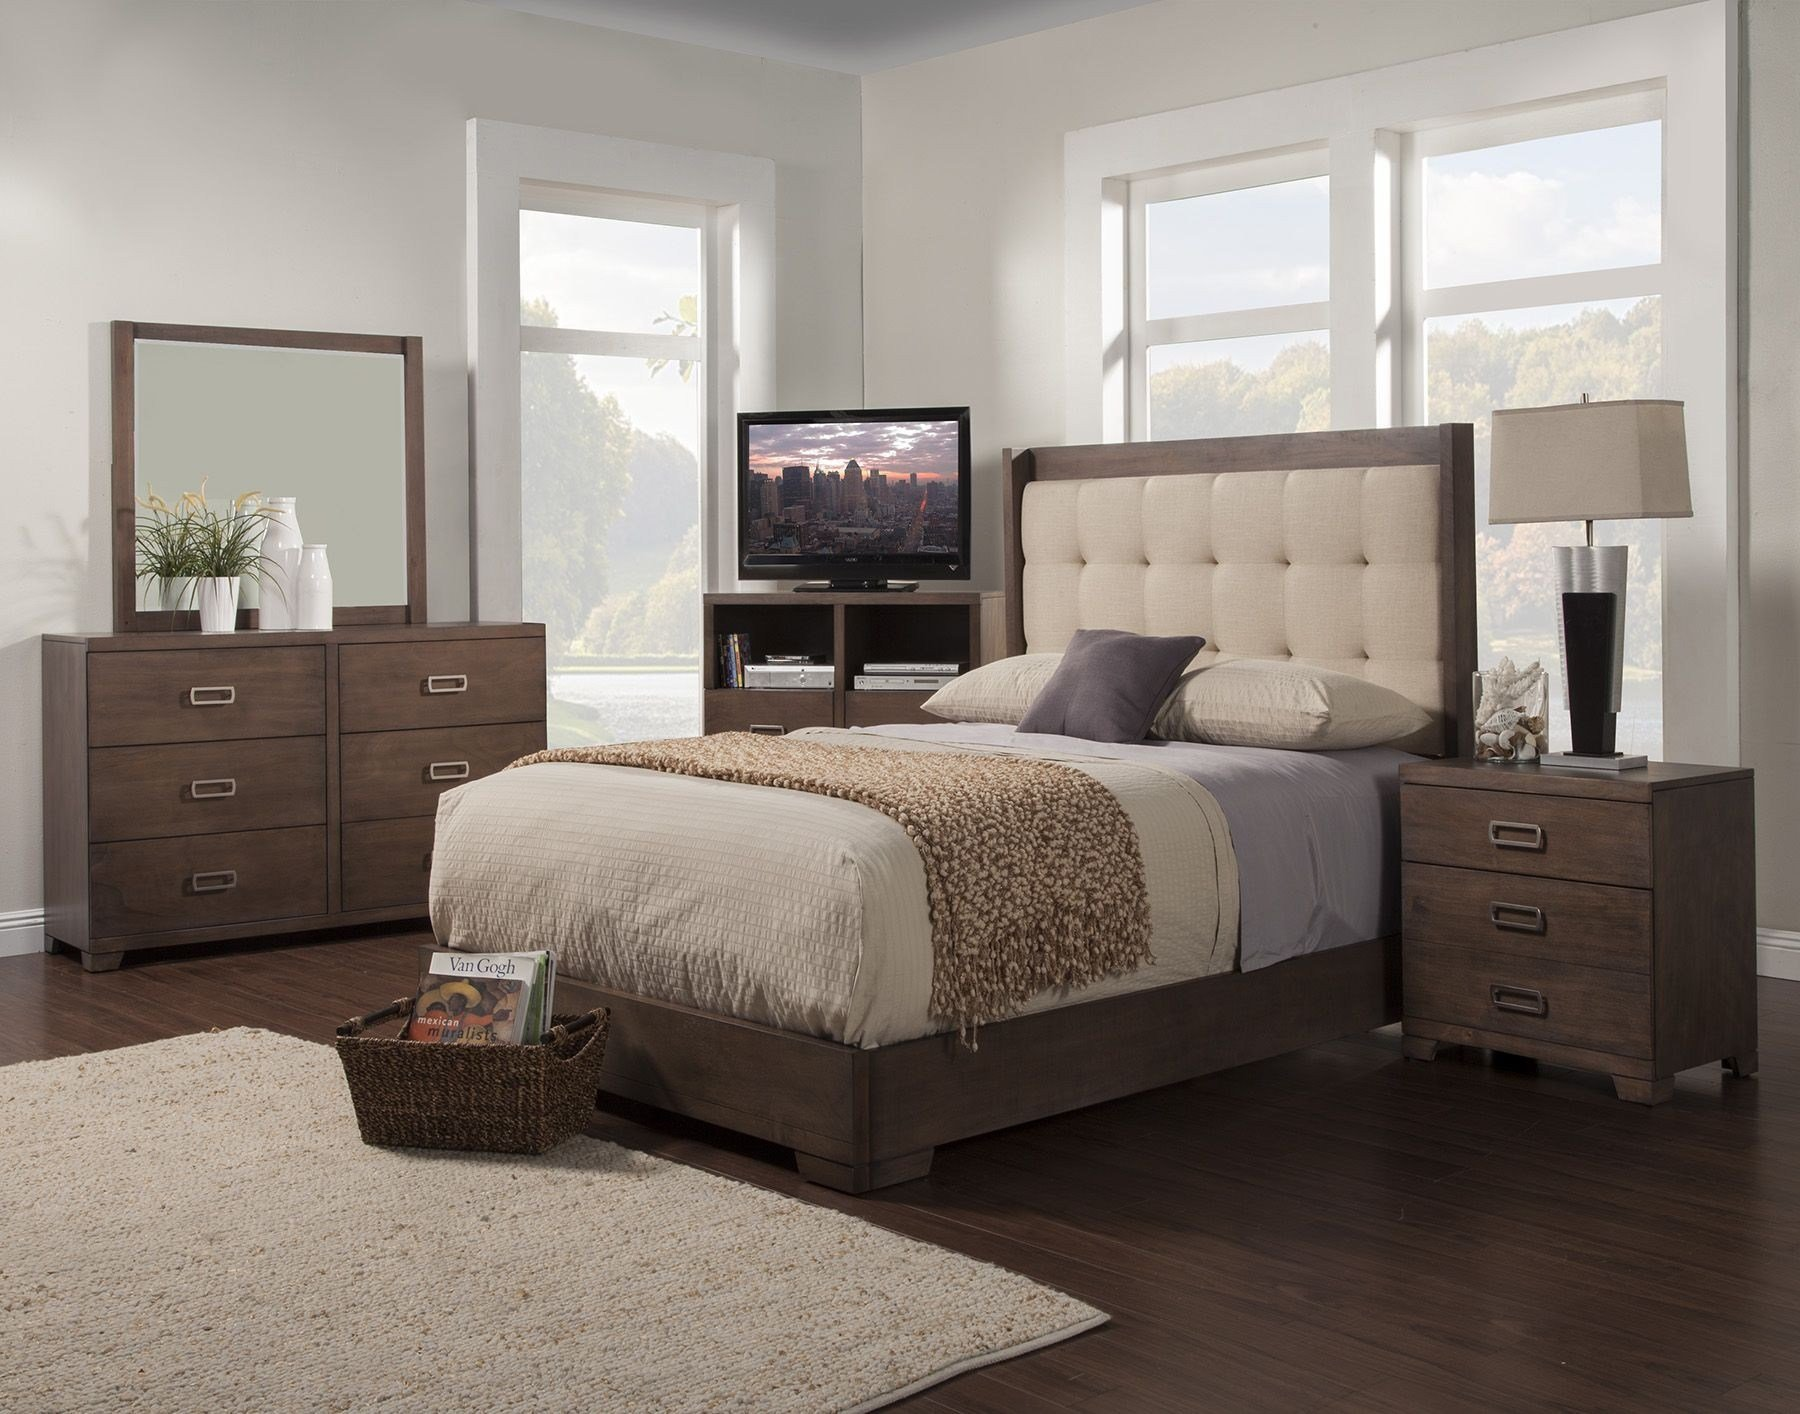 Best Savannah Pecan Tufted Platform Bedroom Set From Alpine With Pictures